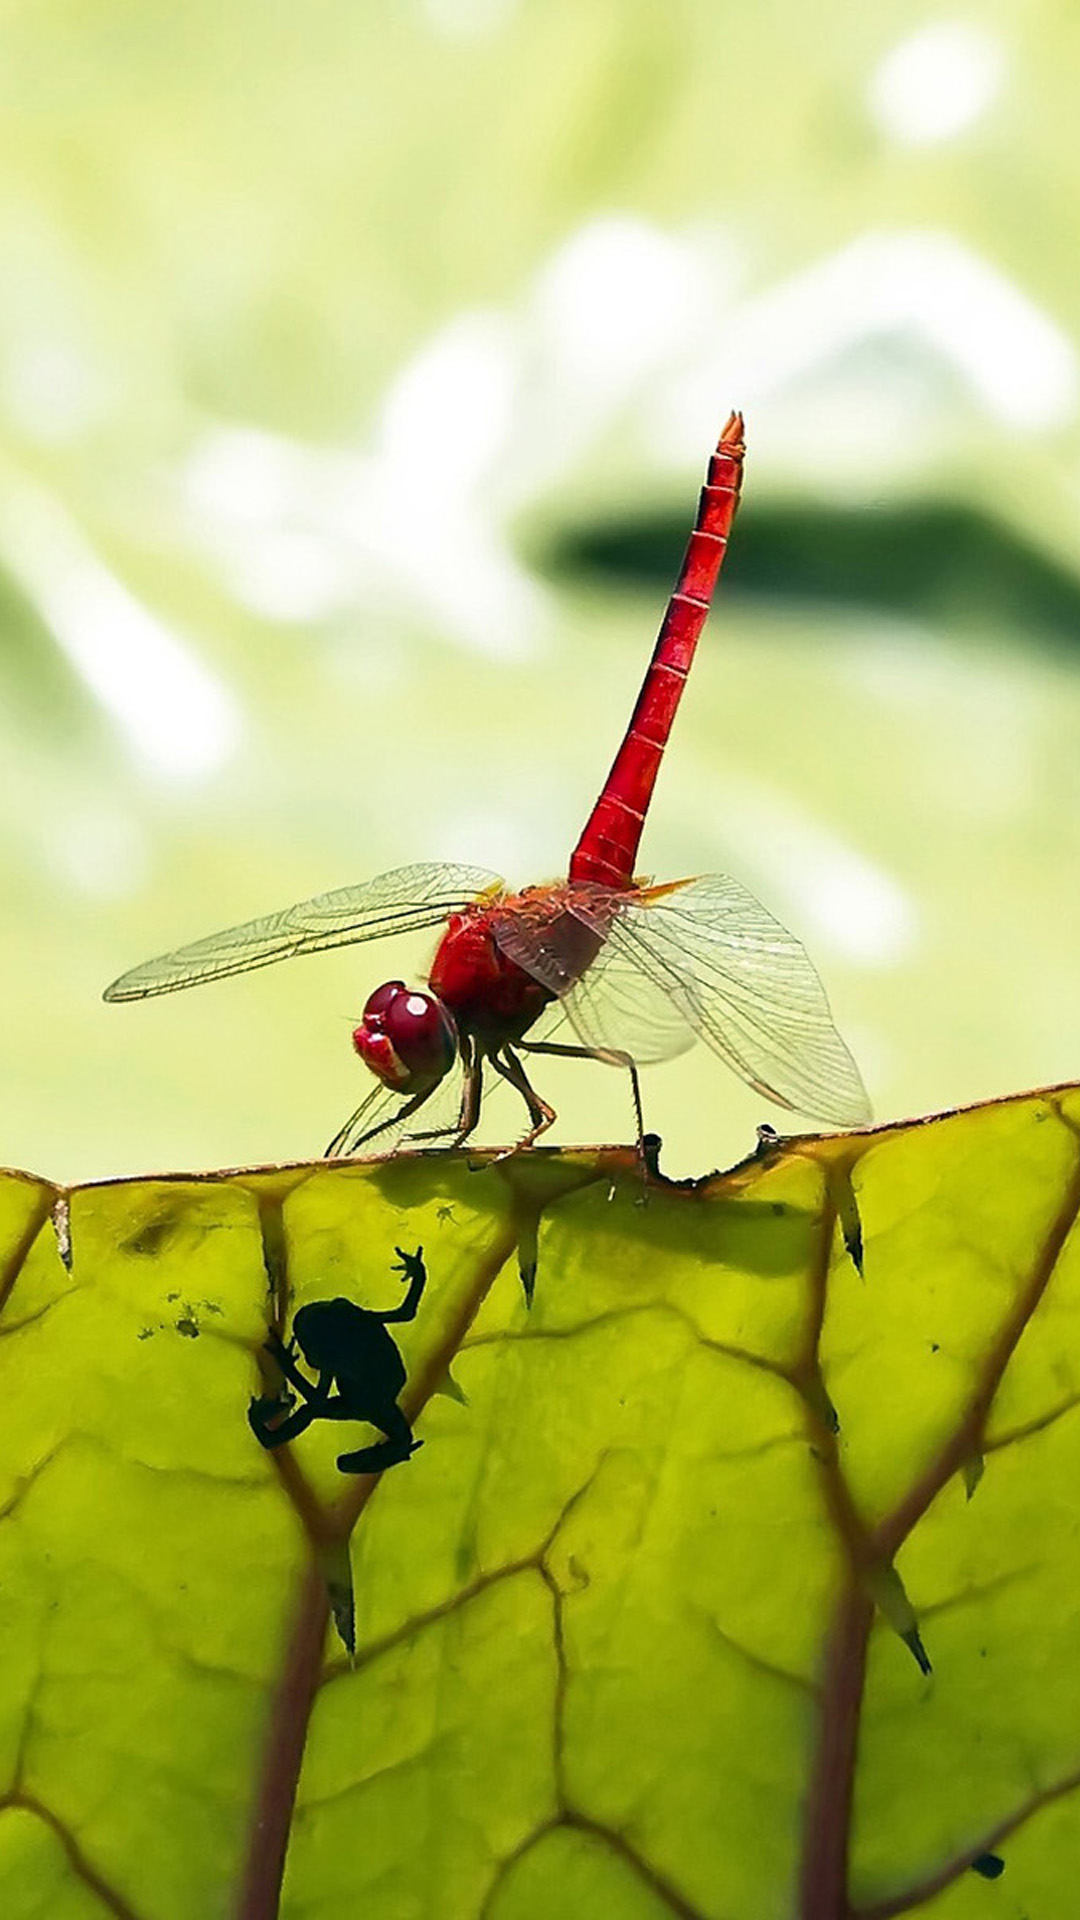 Red dragonfly android wallpaper android hd wallpapers - Free dragonfly wallpaper for android ...